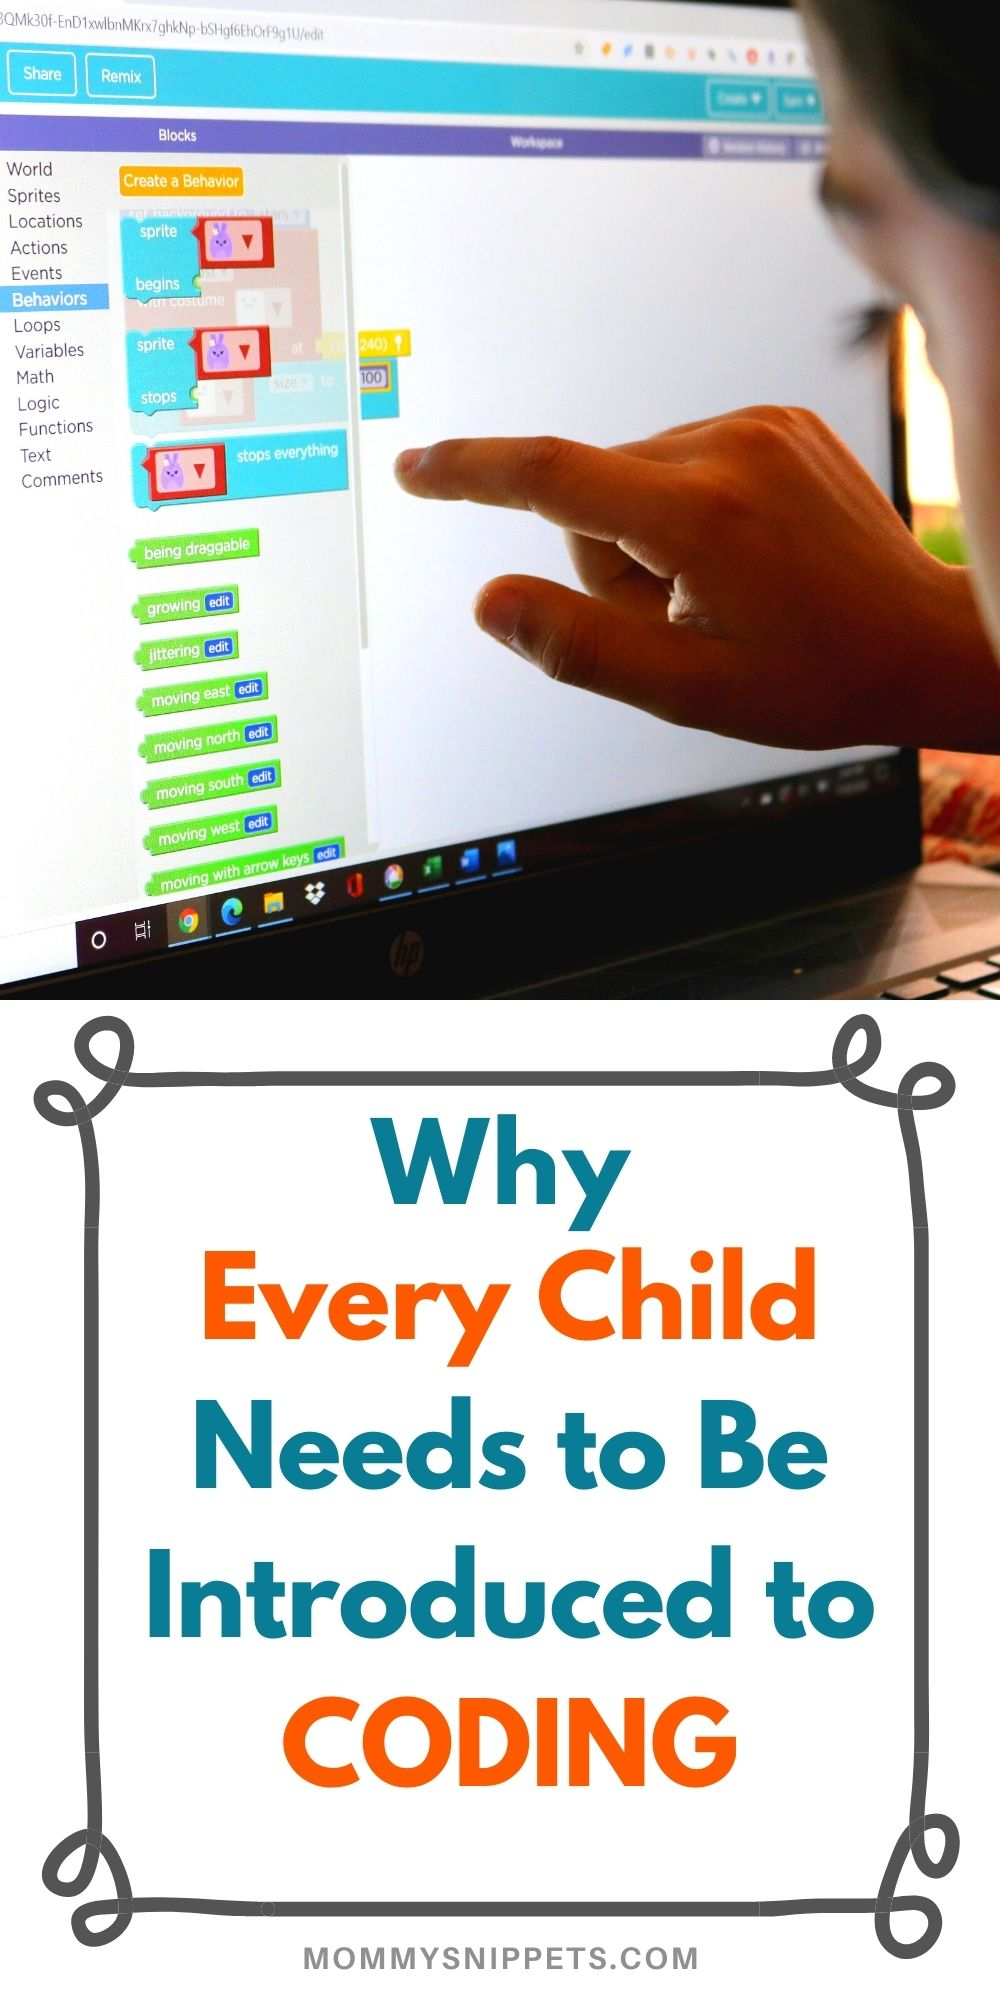 Why Every Child Needs to Be Introduced to Coding- MommySnippets.com